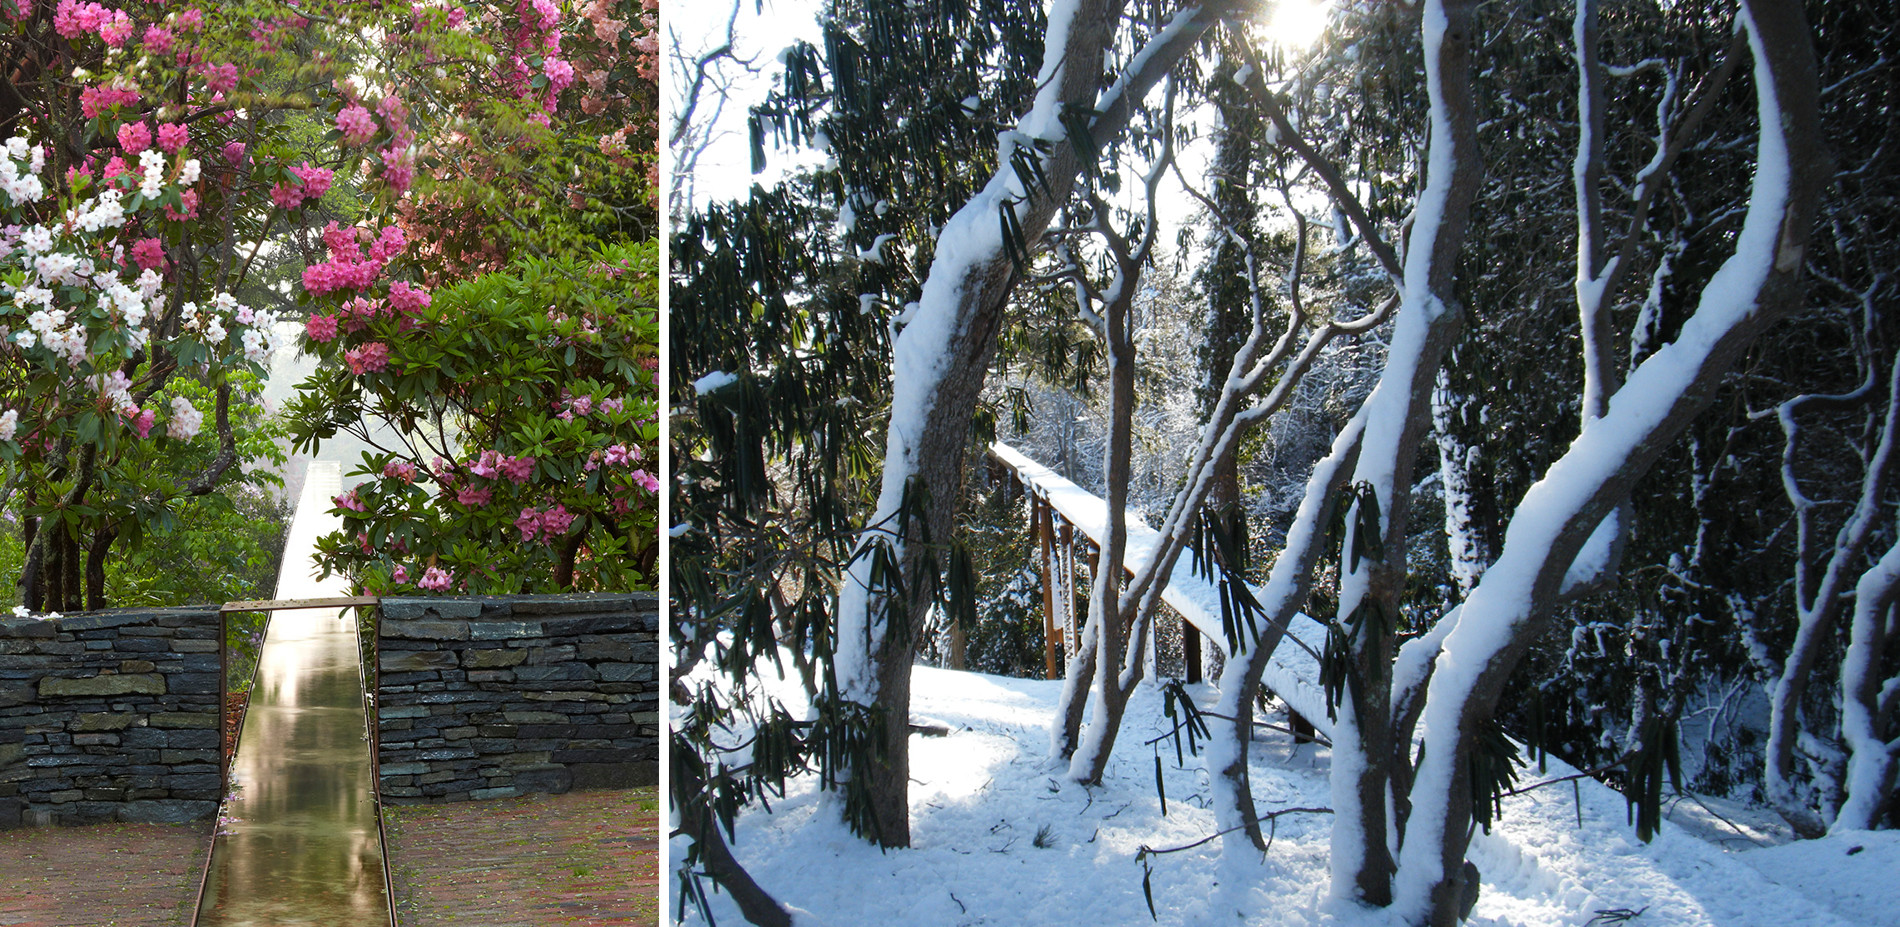 Preserved Iconic Rhododendron